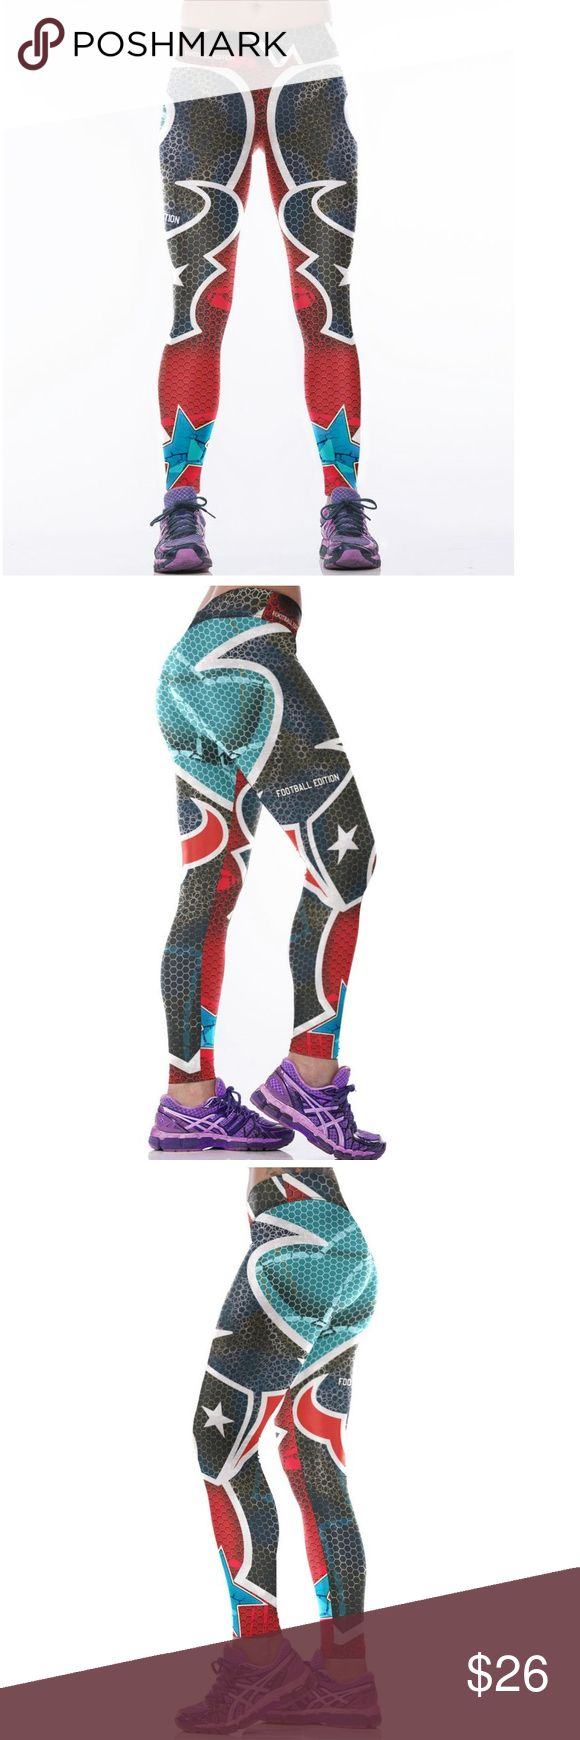 🏈SALE🏈 Texans NFL Leggings Root for your favorite team in these high quality NFL leggings! Perfect wardrobe addition while watching Sunday football games. The vivid colors and designs are sure to turn heads! Get a pair now while they last to show your team support every week as they inch their way to the glorious Super Bowl Condition: Brand New in Packaging Material: Spandex / Polyester Measurements:  (Length / Waist / Hip) S/M: 36 / 27.5-37 / 33-41.5 L/XL: 36.5 / 30–39.5 / 35.5-44 Price…